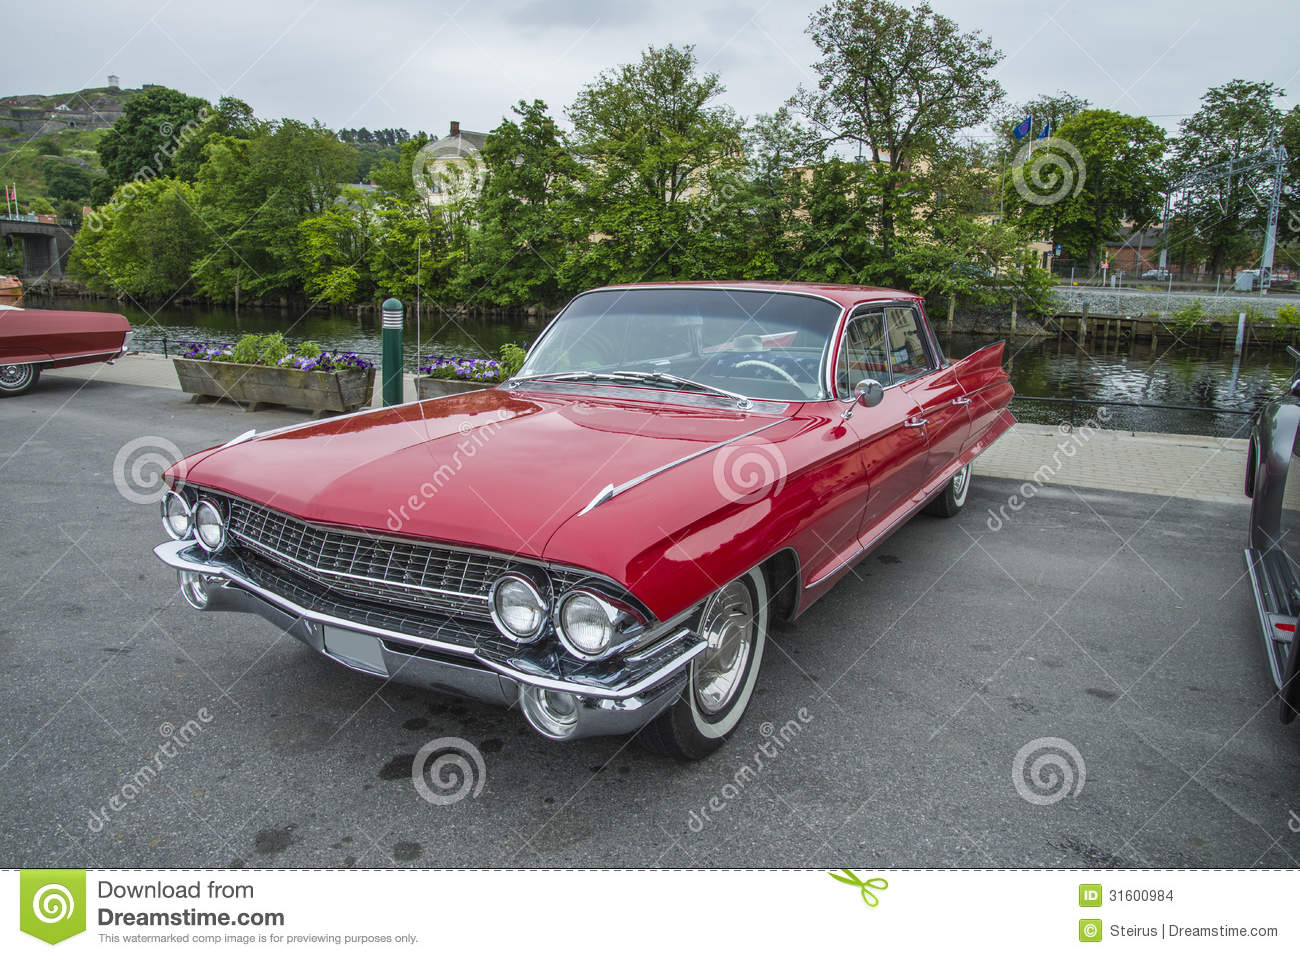 Very Nice 1961 Cadillac Deville Editorial Stock Image Of Sedan The Is Shot At A Fish Market In Halden Norway Where There Every Wednesday During Summer Months Are Held Classic American Car Show